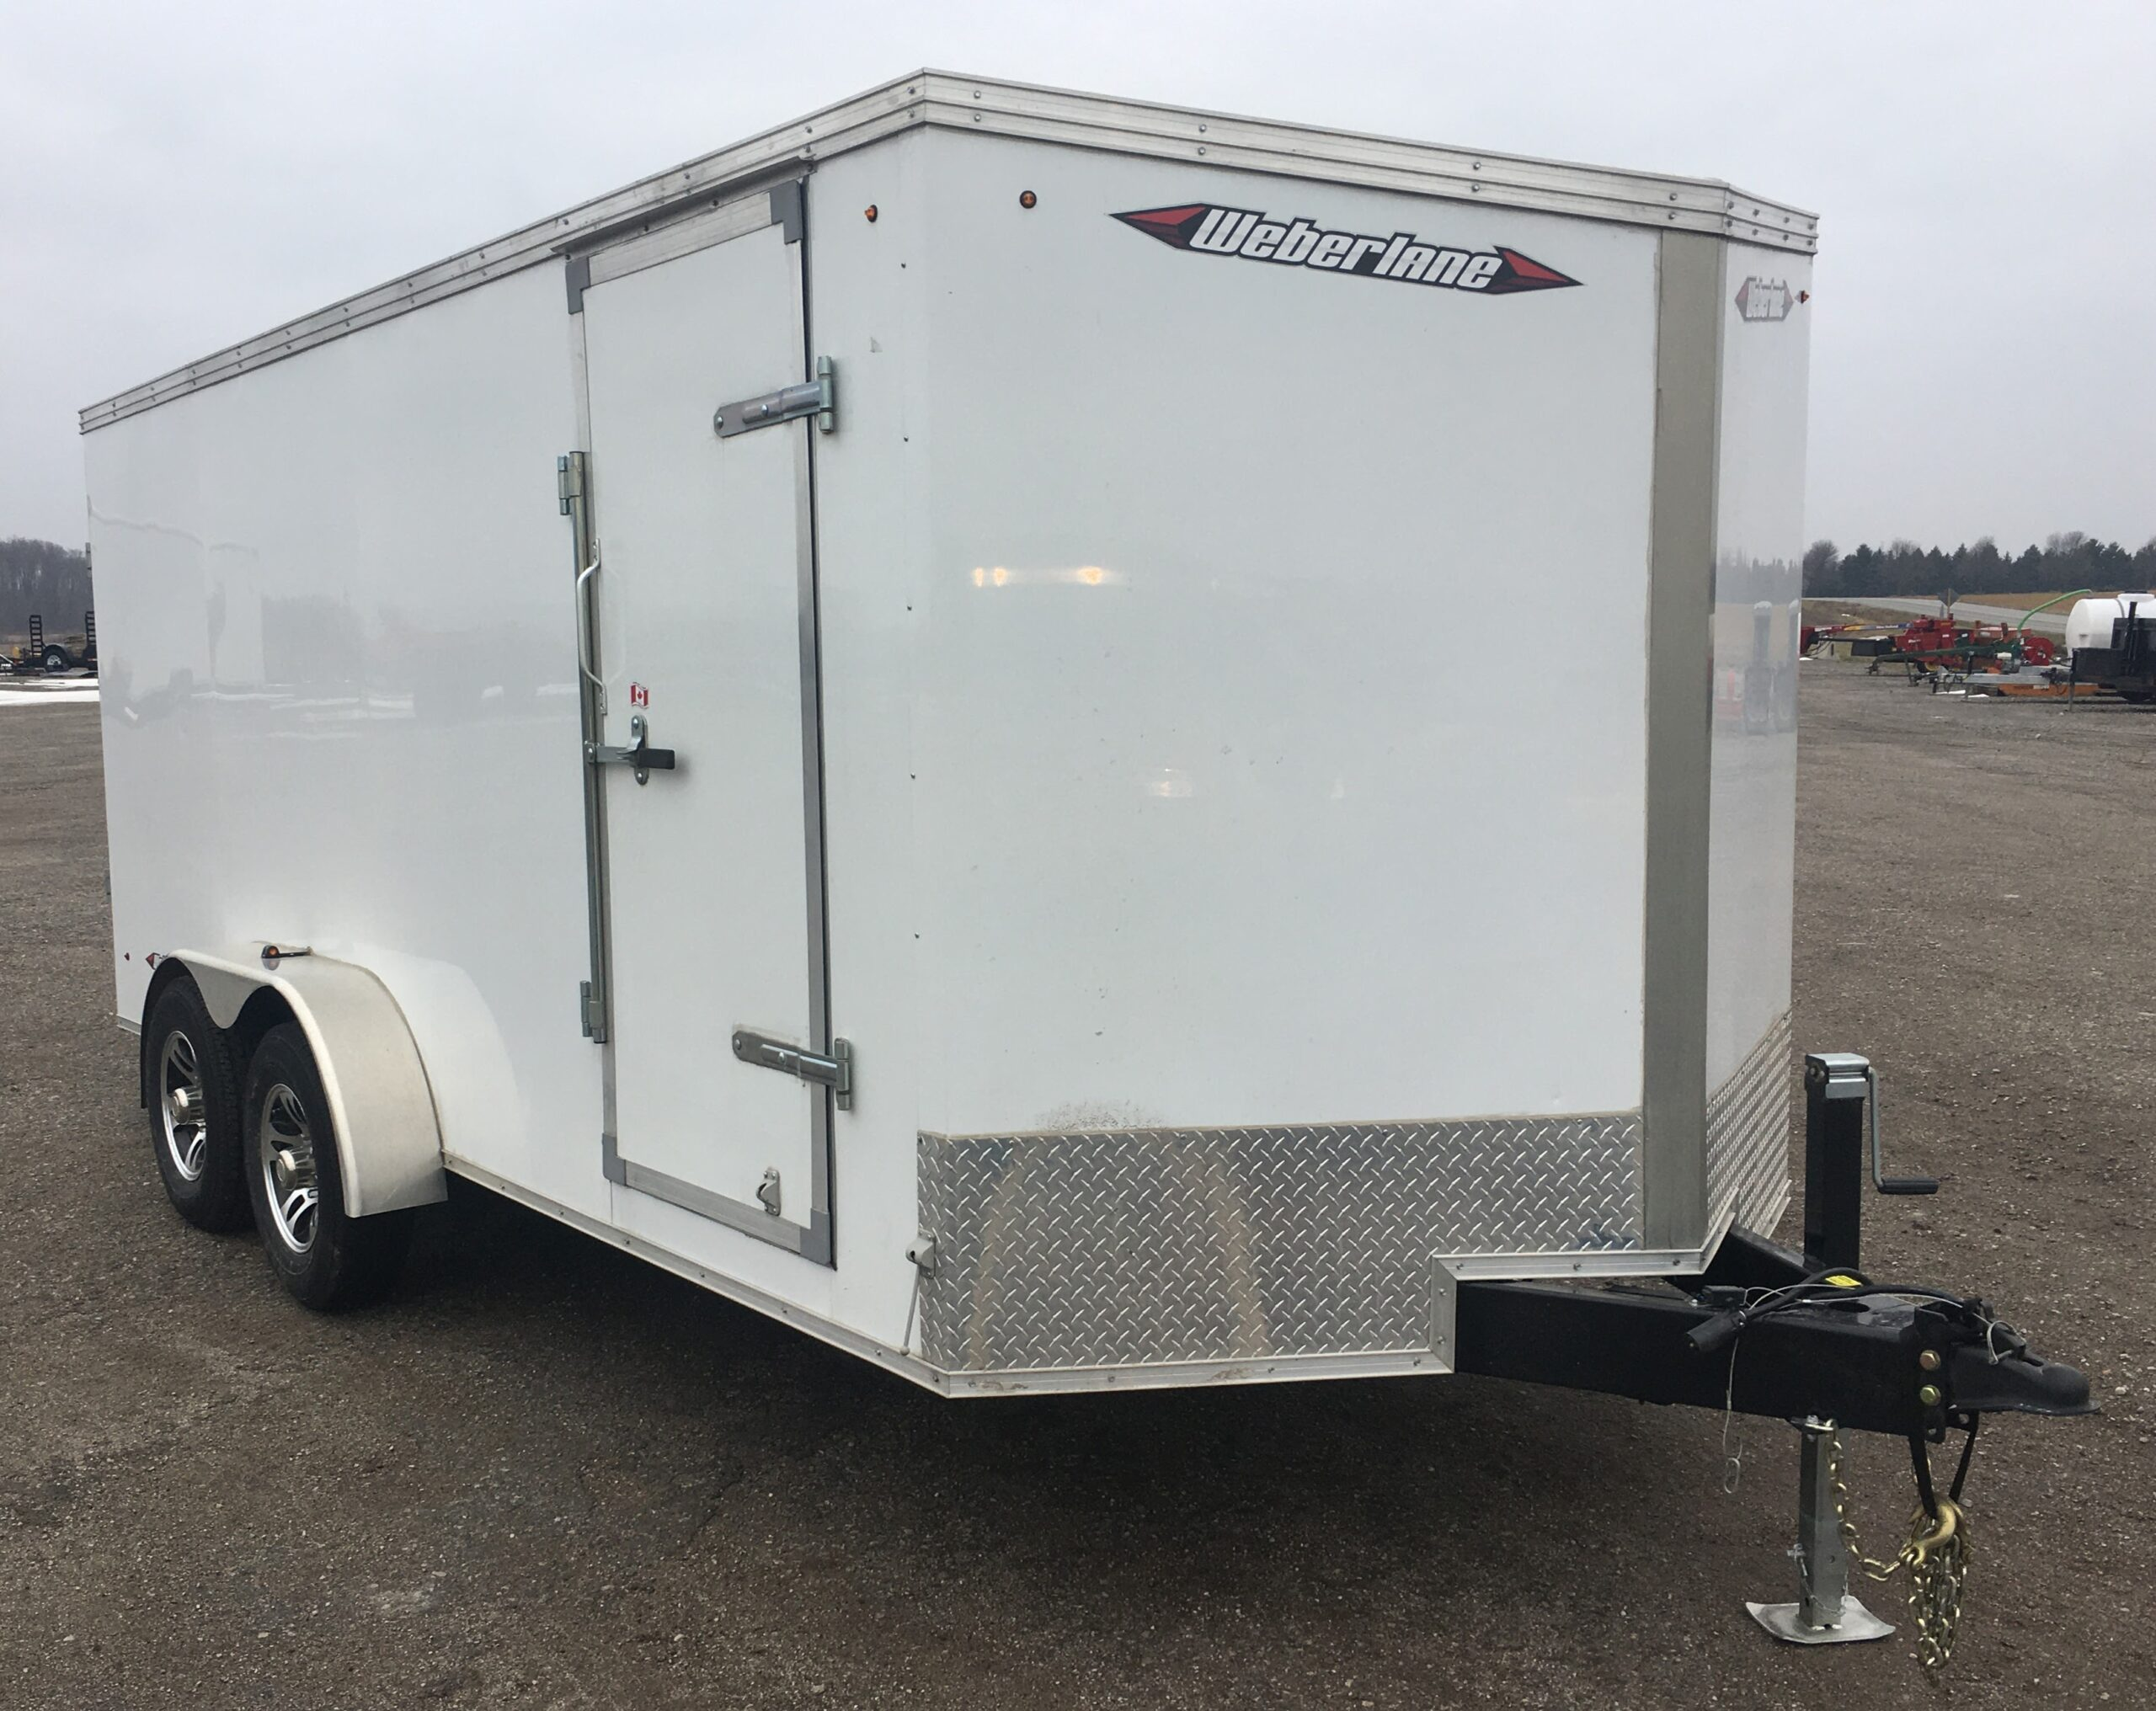 Enclosed Trailer 7X16 Weberlane Image